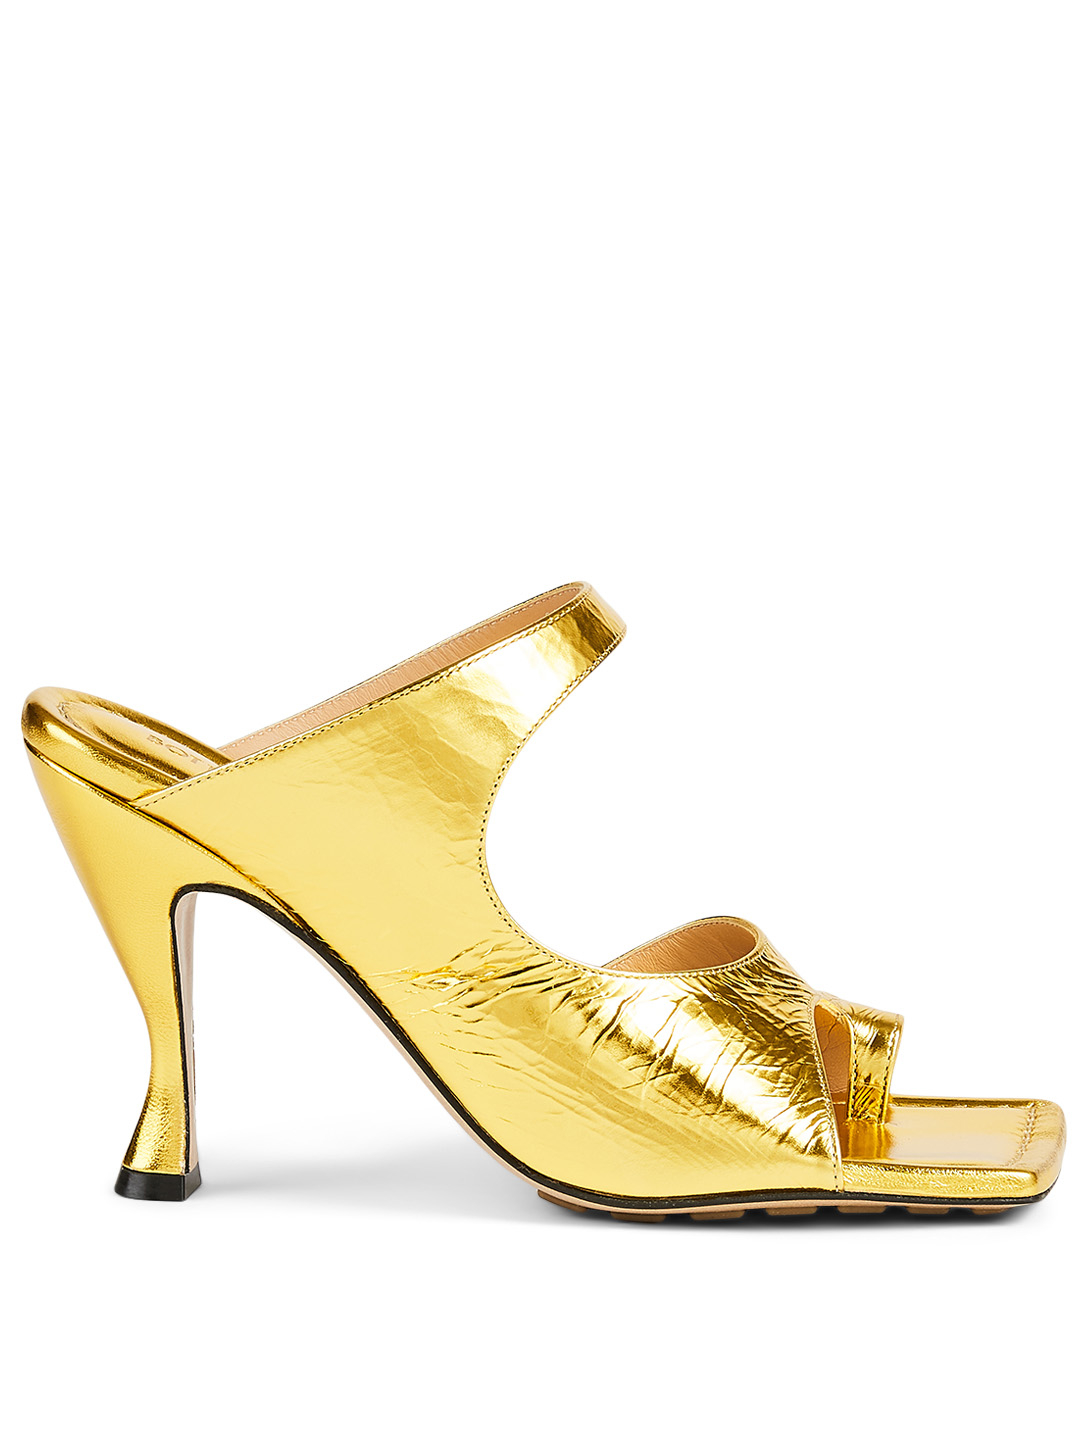 BOTTEGA VENETA Metallic Leather Heeled Mule Sandals Women's Metallic